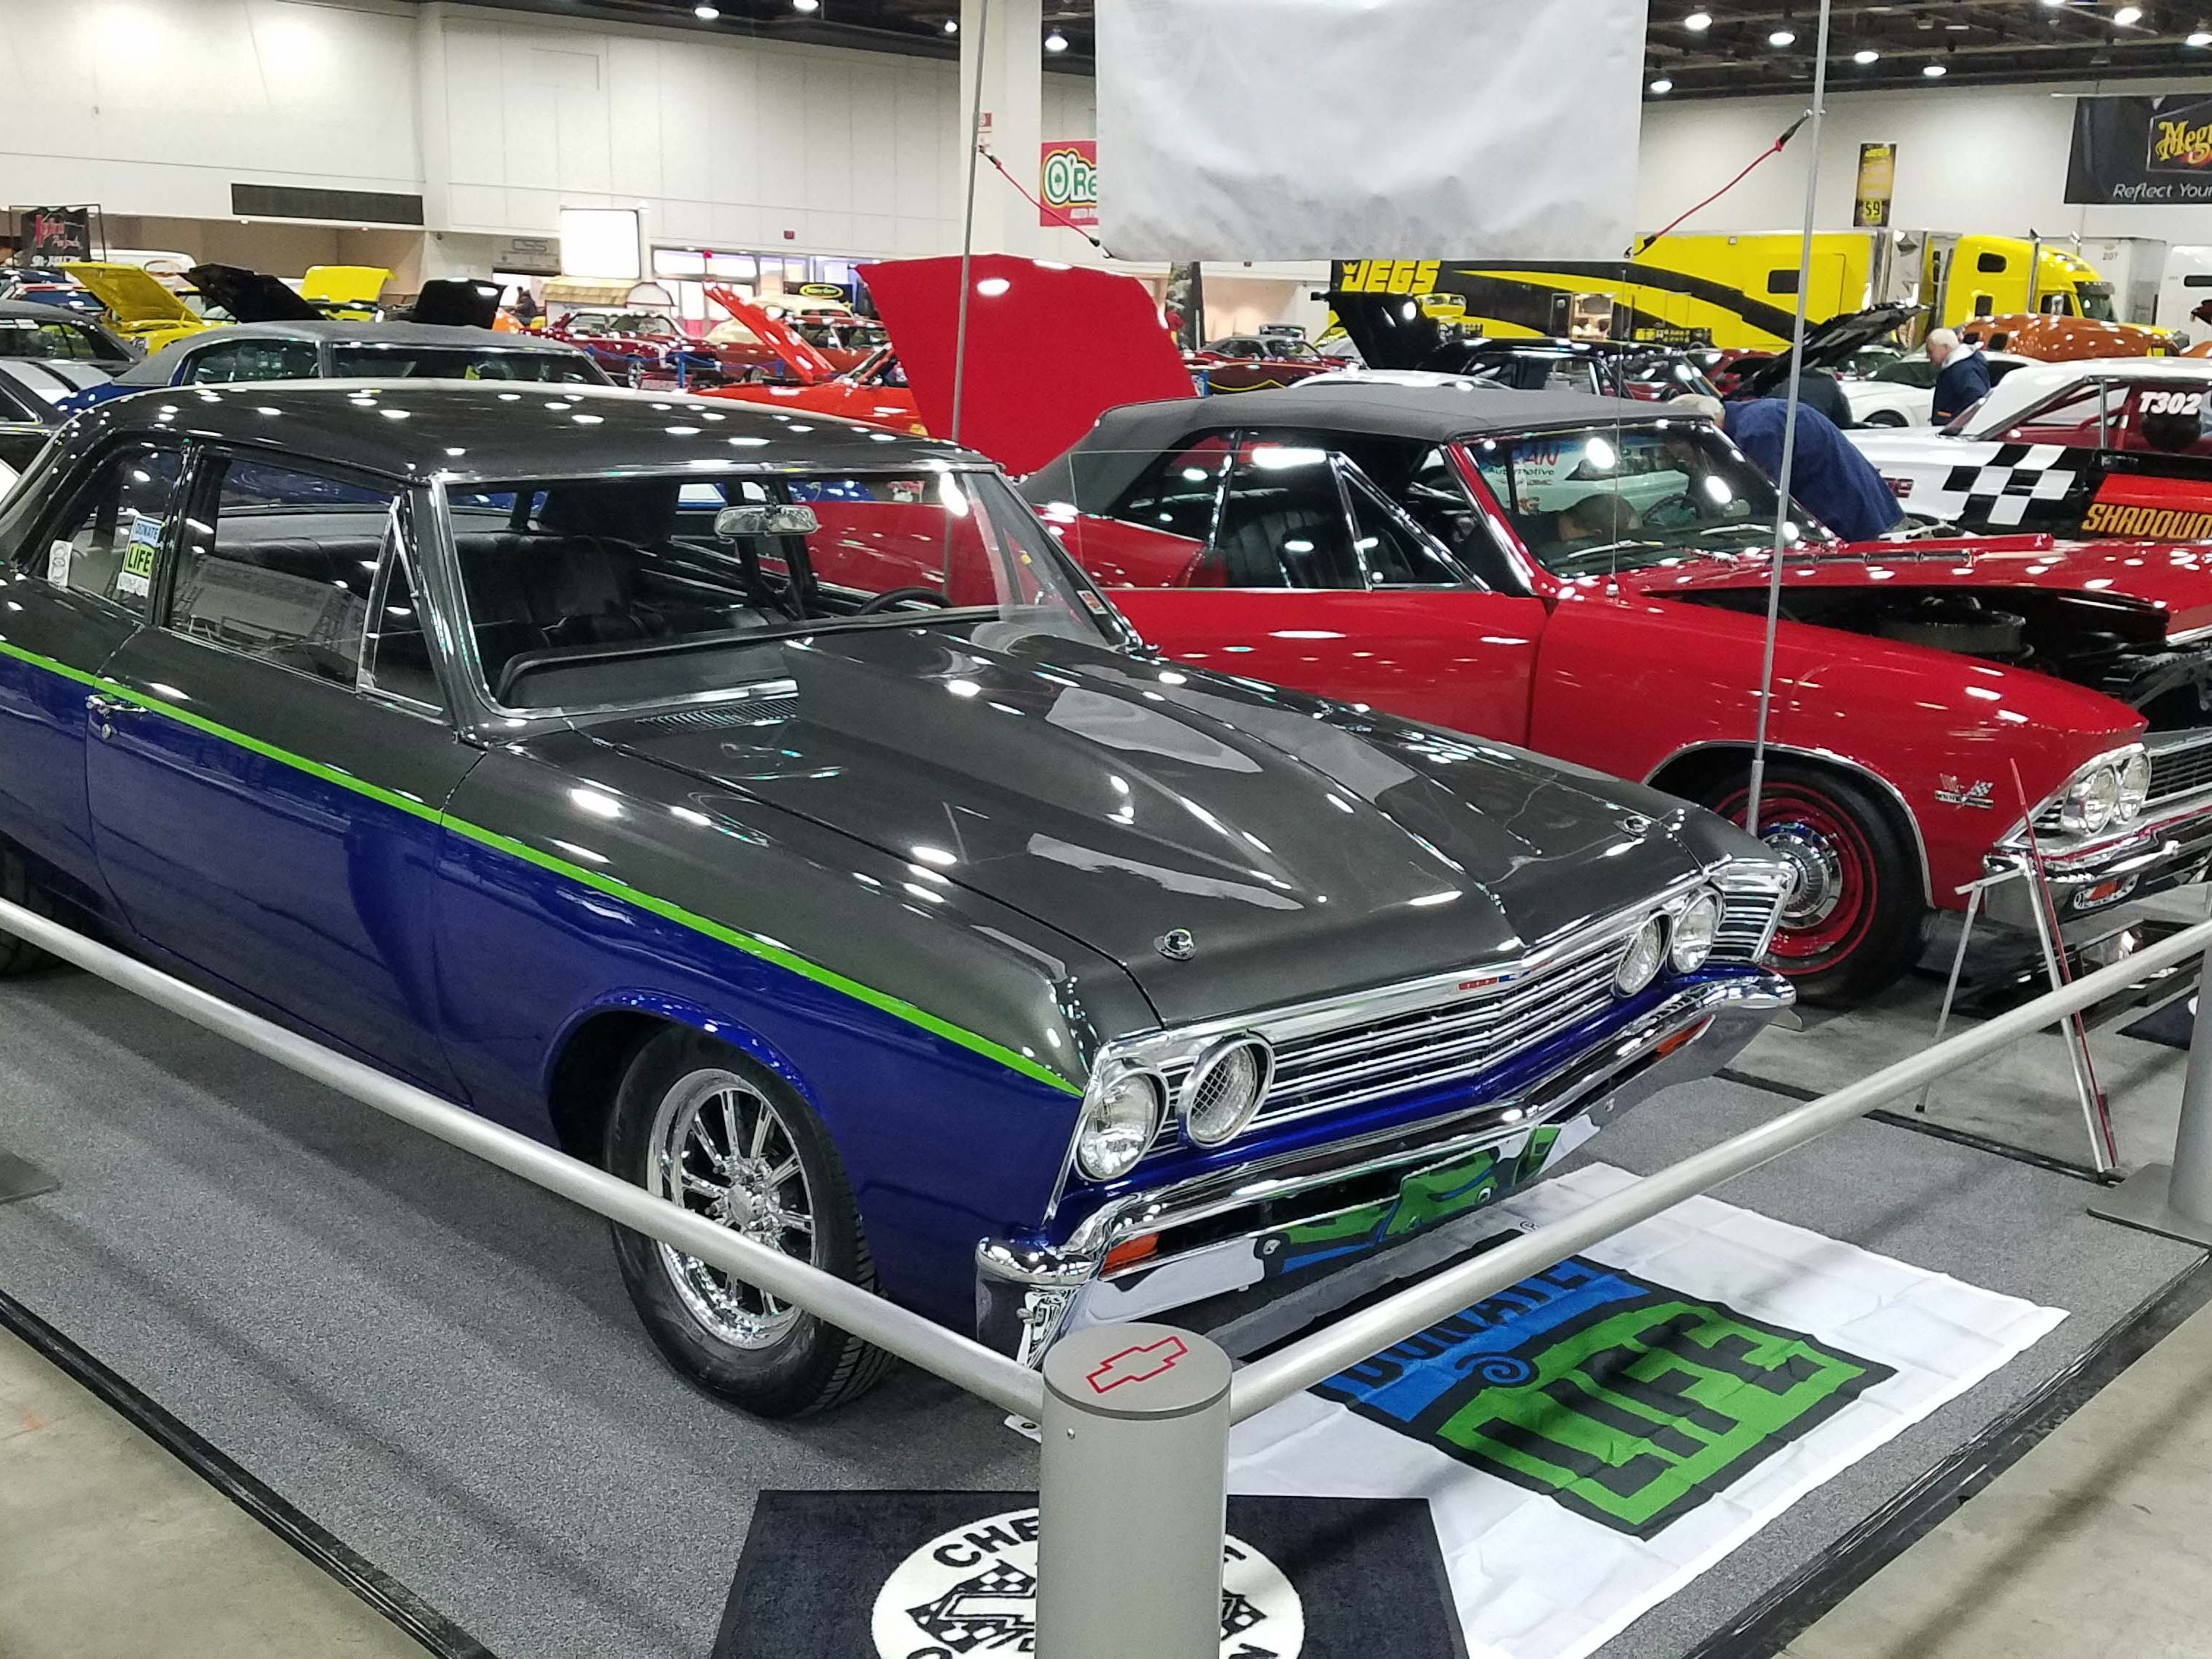 The Autorama show floor is stuffed with chopped, dumped, and decked rods of every type in 5 different custom mod classes.